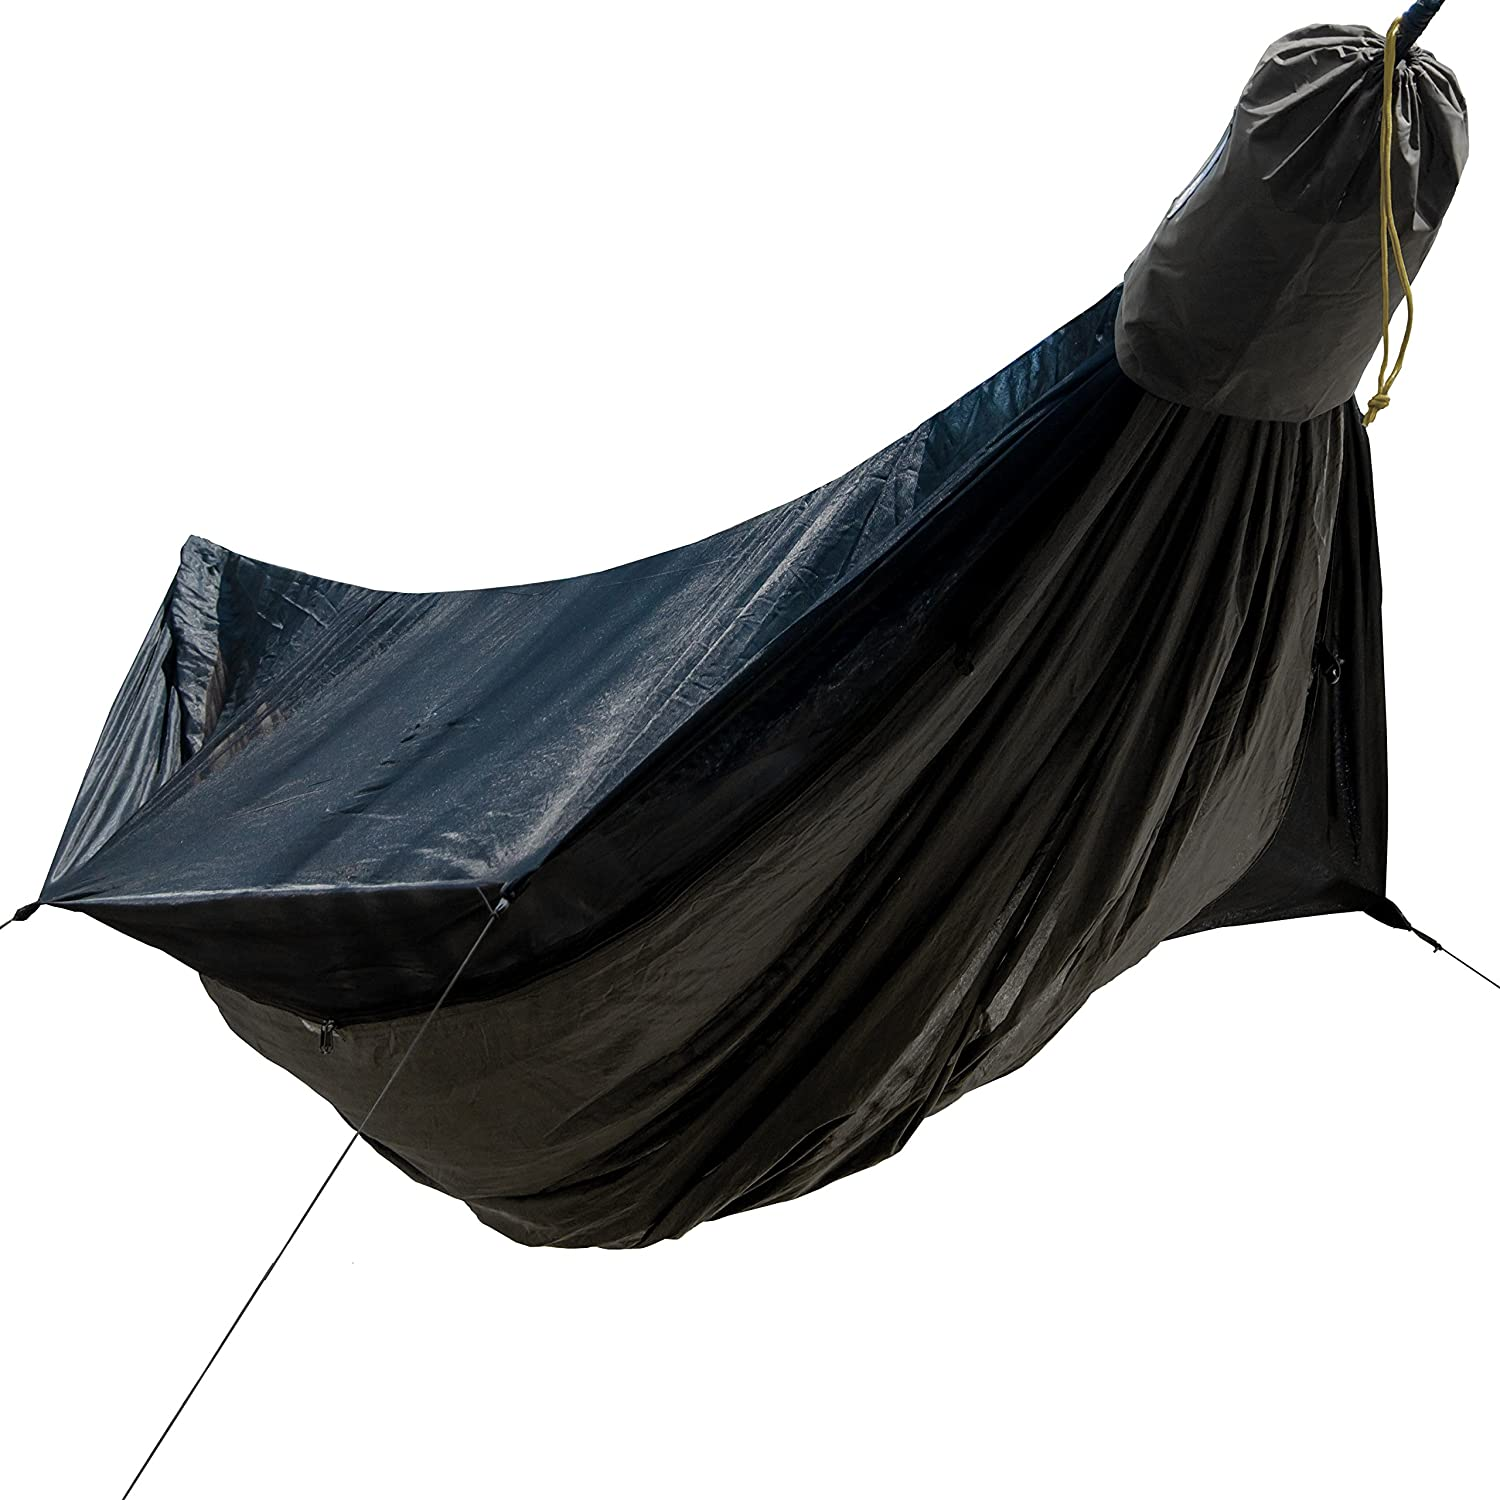 Go Outfitters Goキャンプハンモック2.0 W/内蔵Mosquito Net – スレートグレー11 ' Long x 64インチWide | Includes 2プレミアムアルミカラビナ、迅速な導入バッグ、4 Stakes & 4衝撃Cords   B07B9ZZPLG